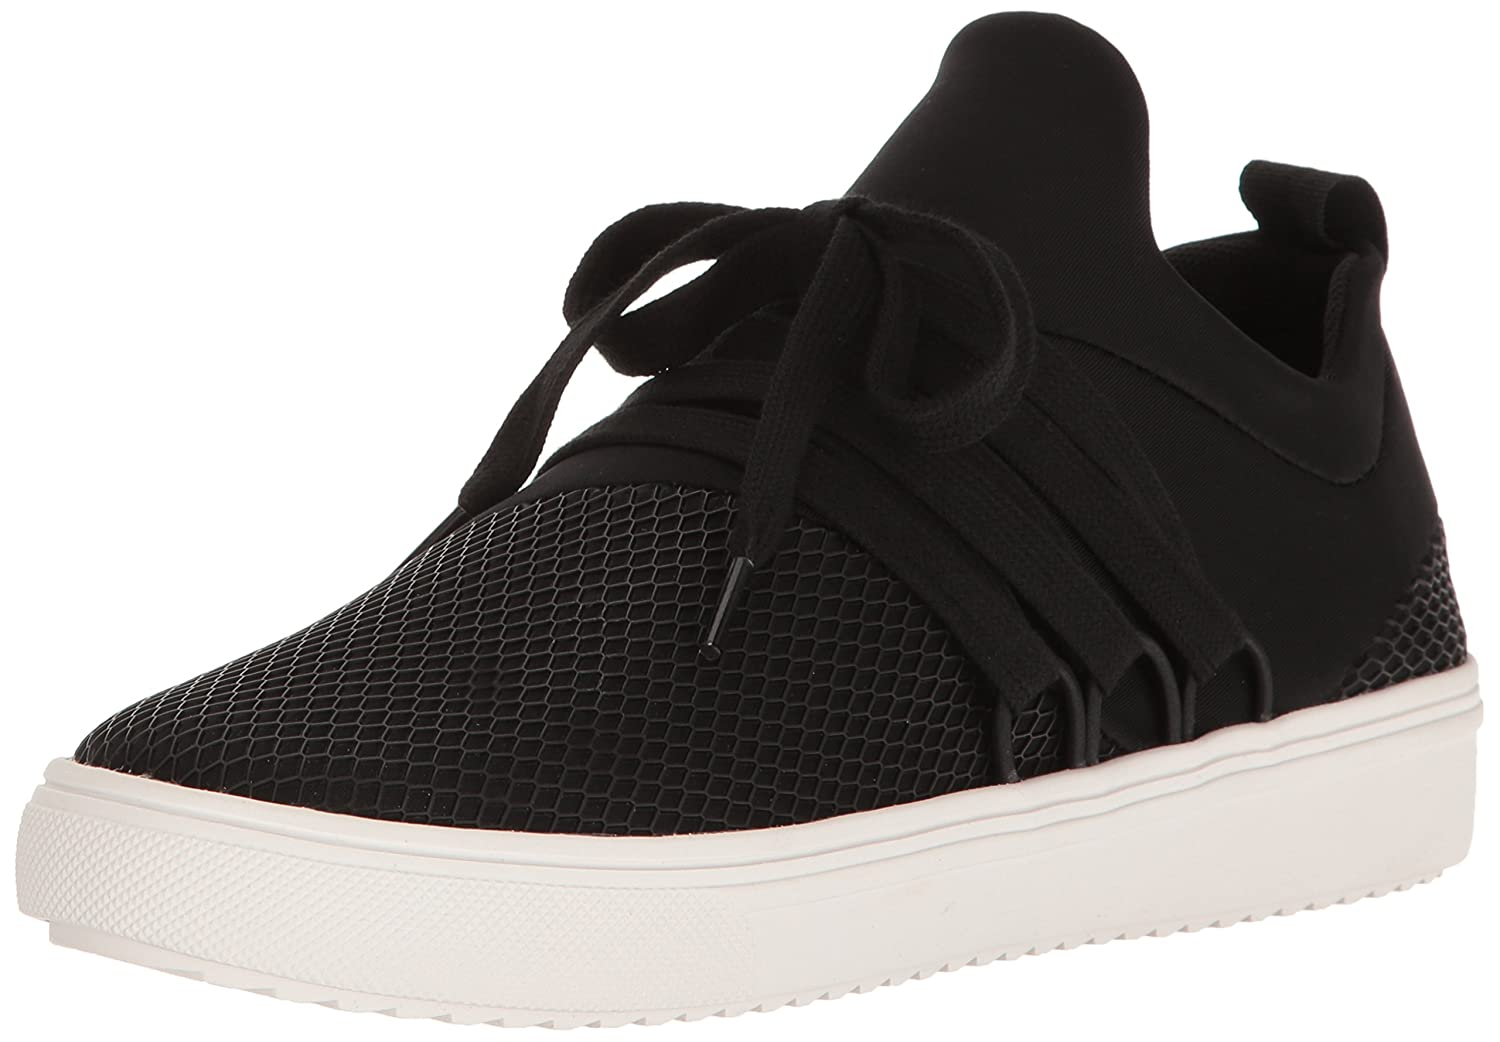 Steve Madden Women's Lancer Fashion Sneaker B01N9YA96Y 8 B(M) US|Black